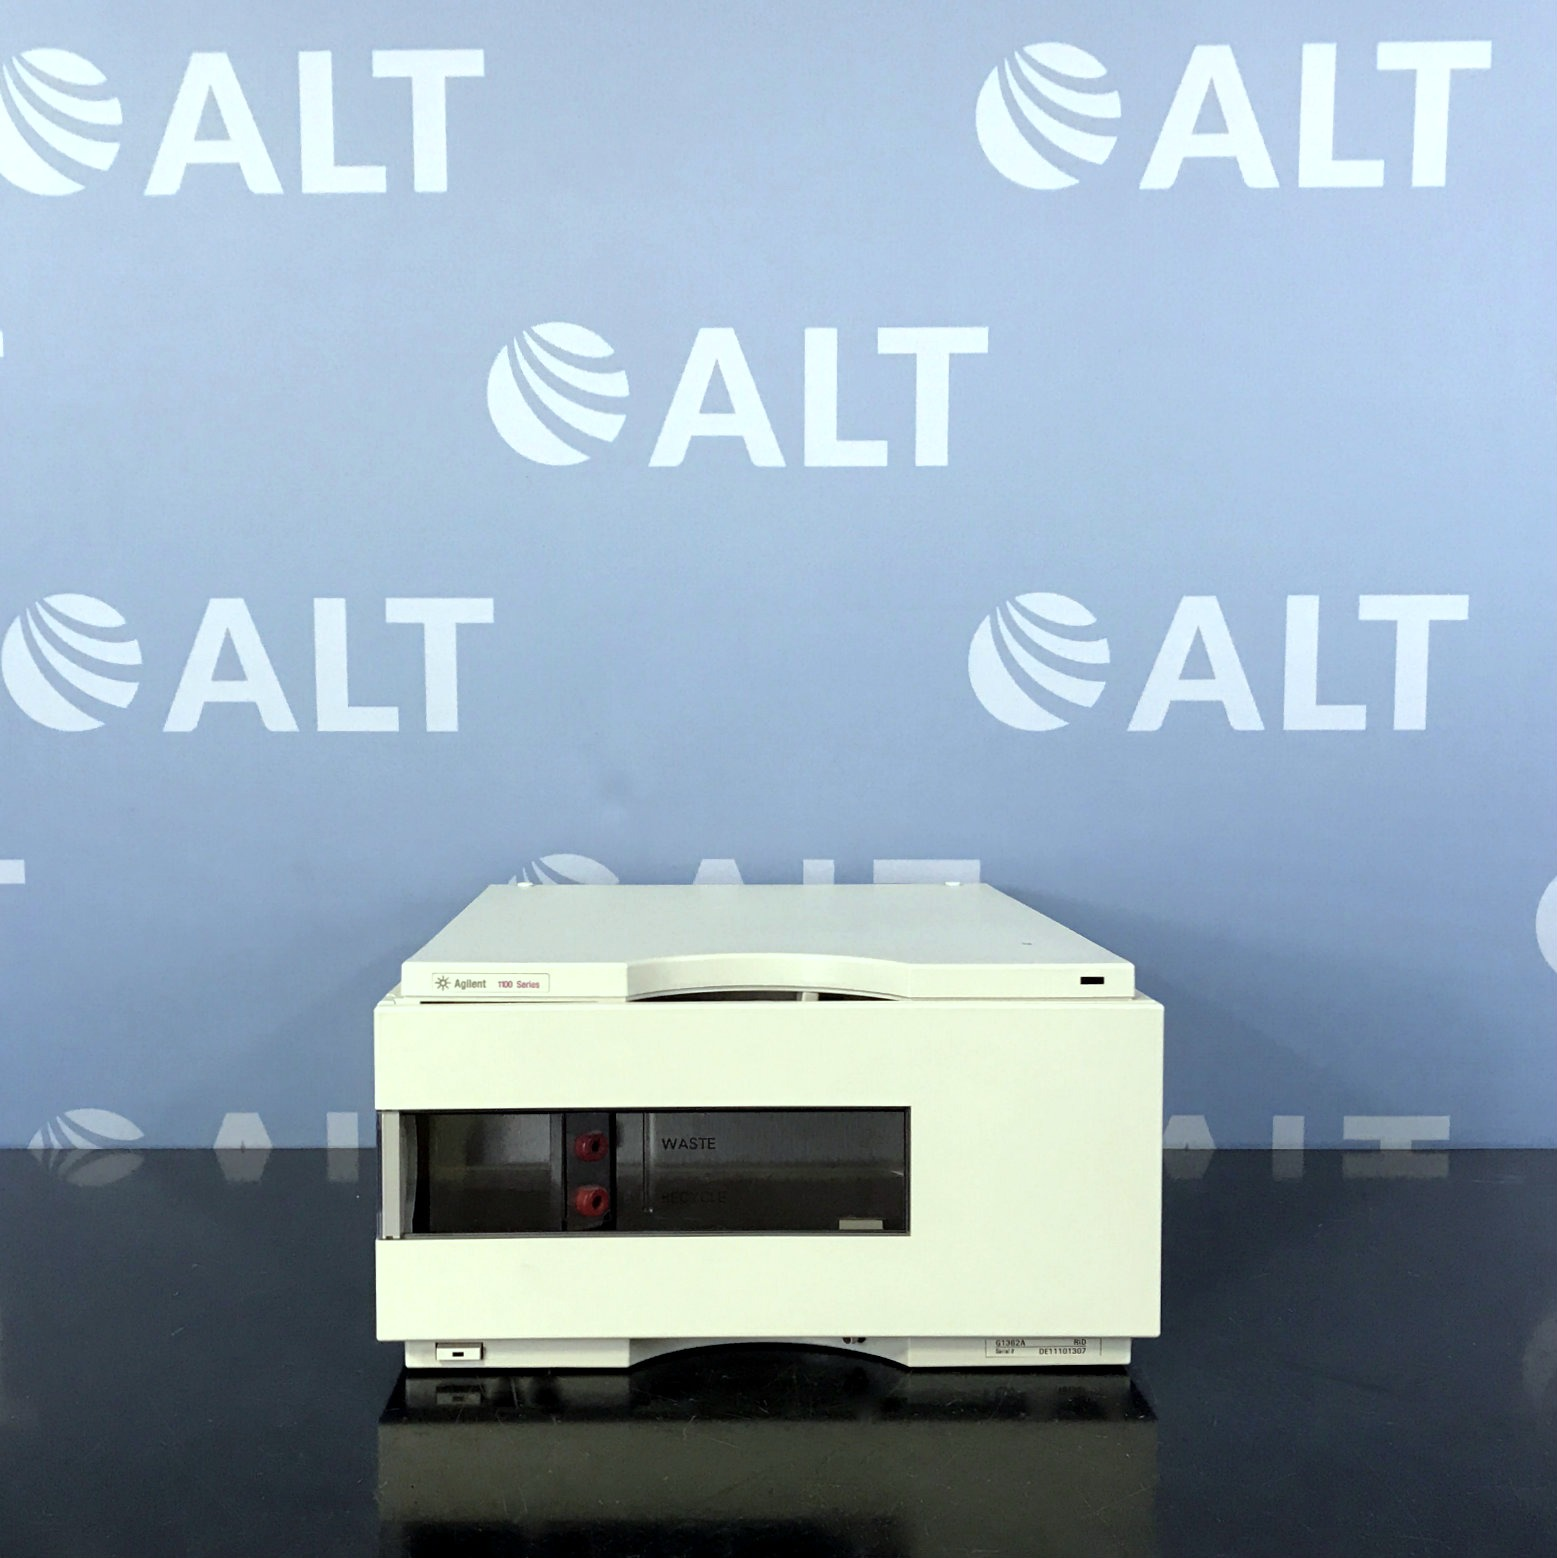 Agilent 1100 Series G1362A RID Refractive Index Detector Image